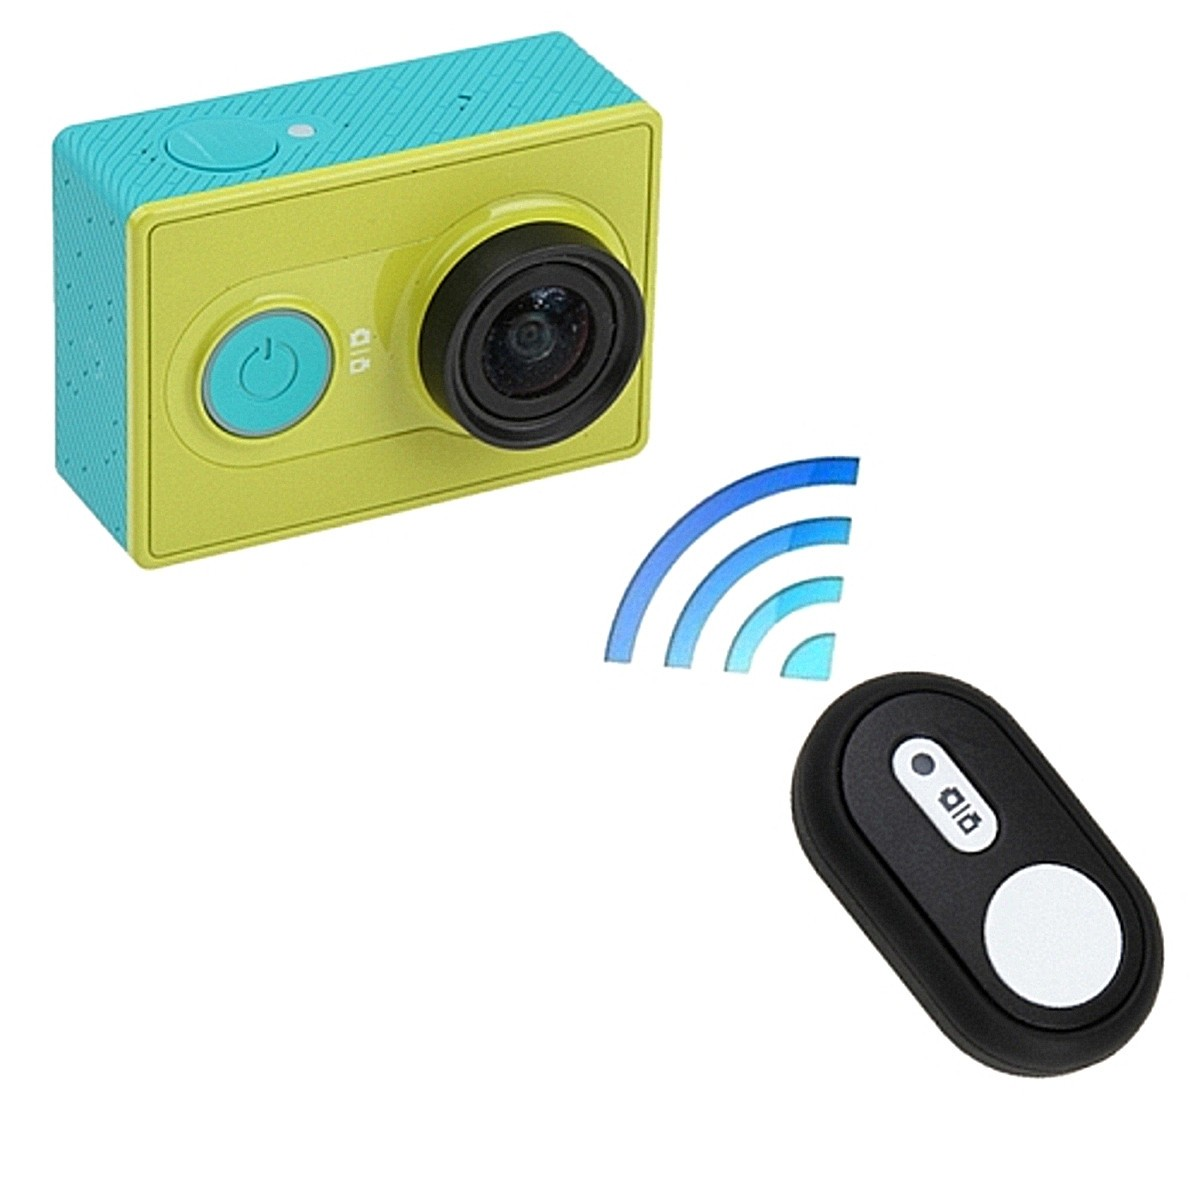 Bluetooth Remote Controller For Xiaomi Yi Sports Camera New Arrival Sports Action Video Cameras Accessories